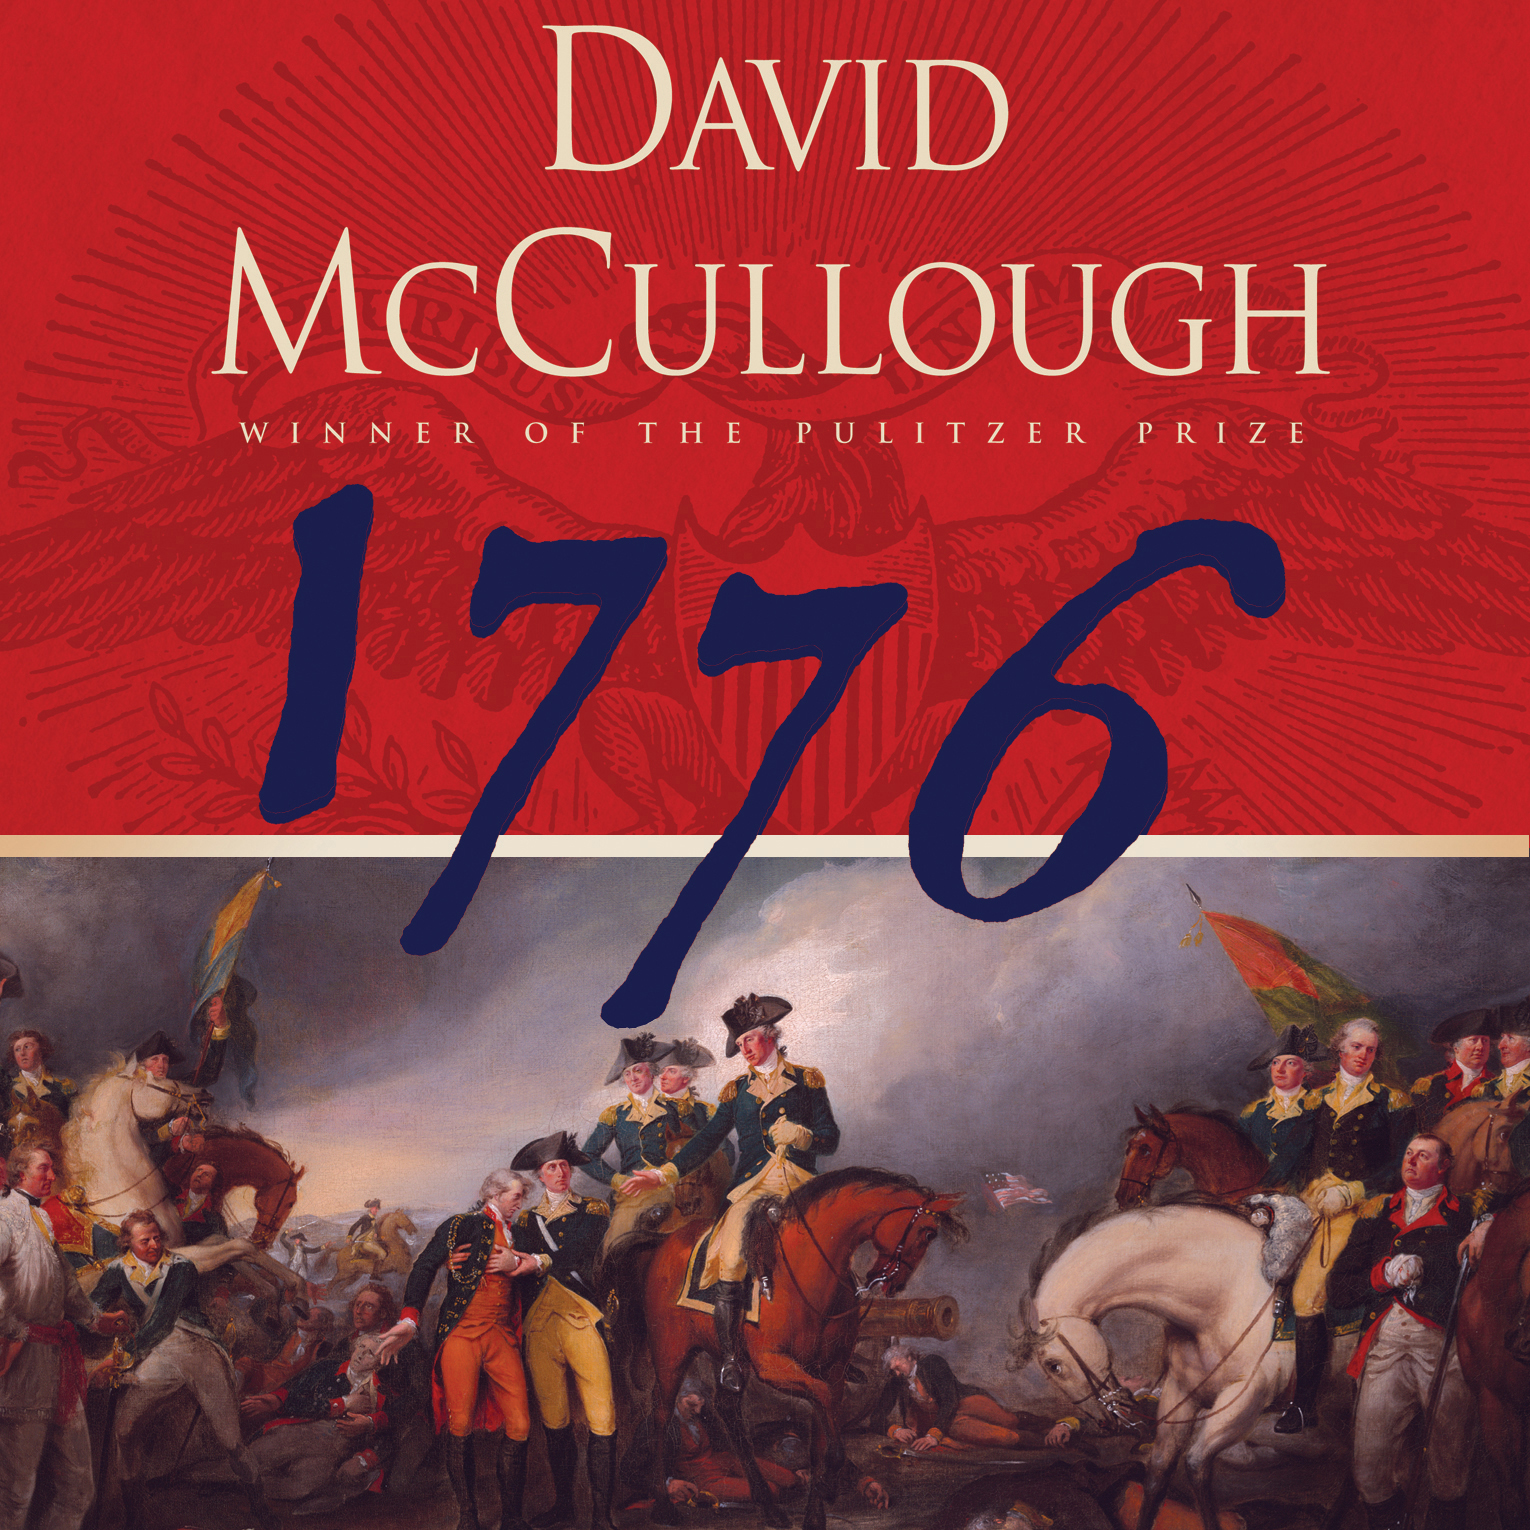 thesis of 1776 by david mccullough David mccullough's 1776 surprise attacks, unfortunate weather, defensive failures, offensive maneuvers, power and plenty, poverty and inadequacies--all are part of 1776david mccullough takes us through the year that america declared its independence and the war began.